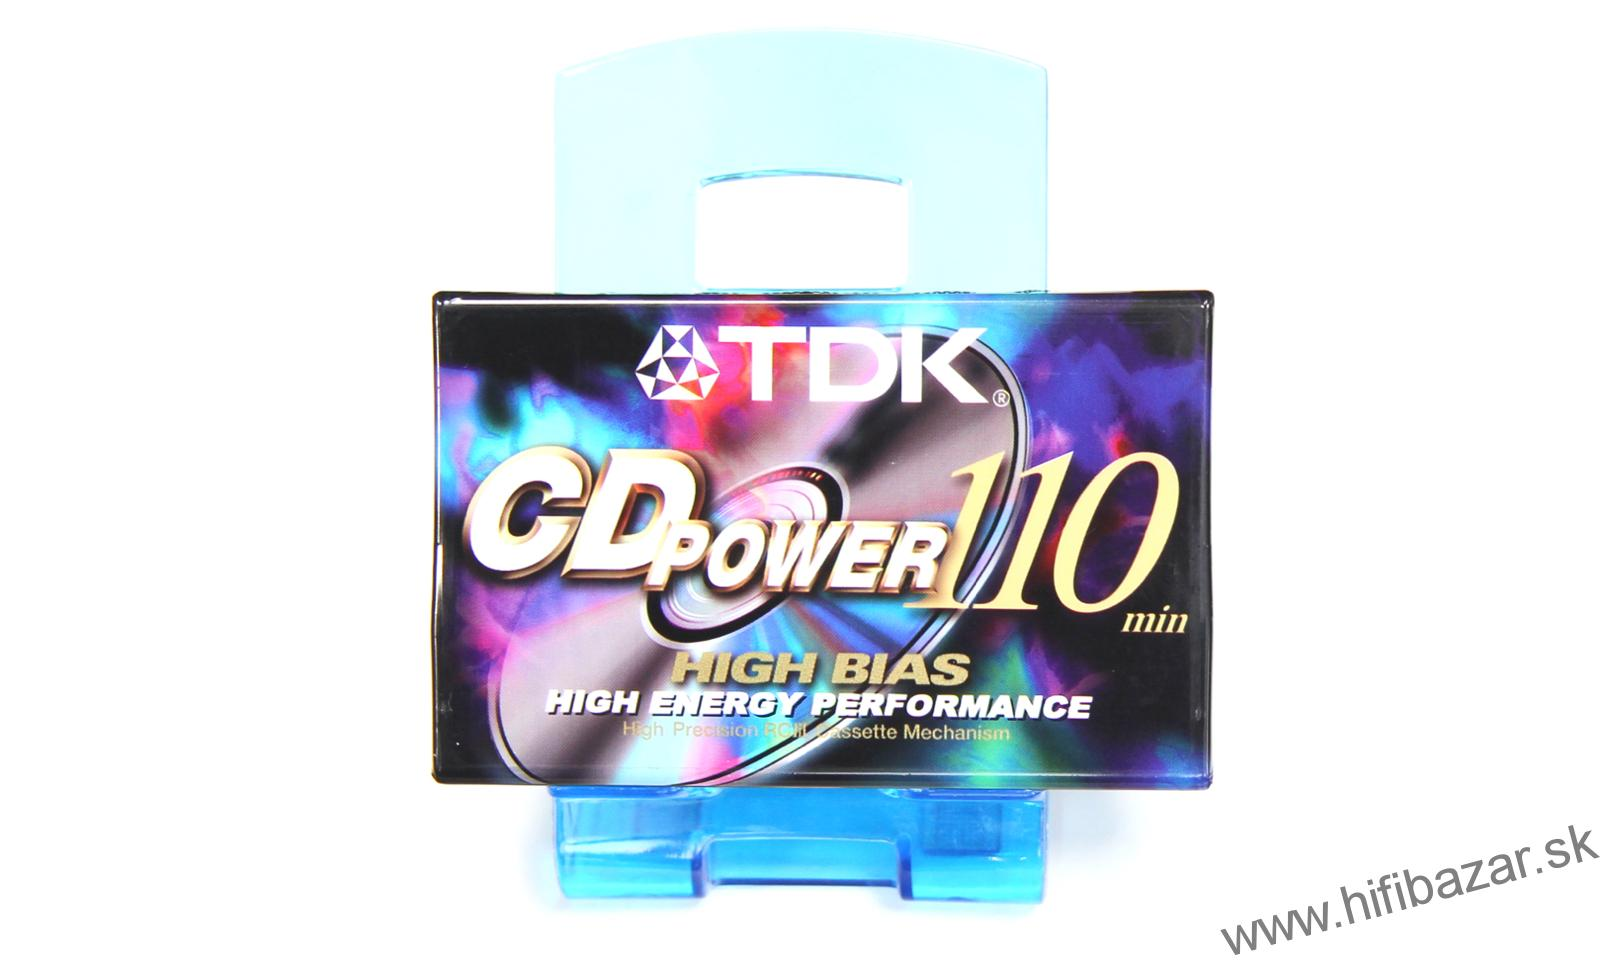 TDK CDPower110 Position Chrome